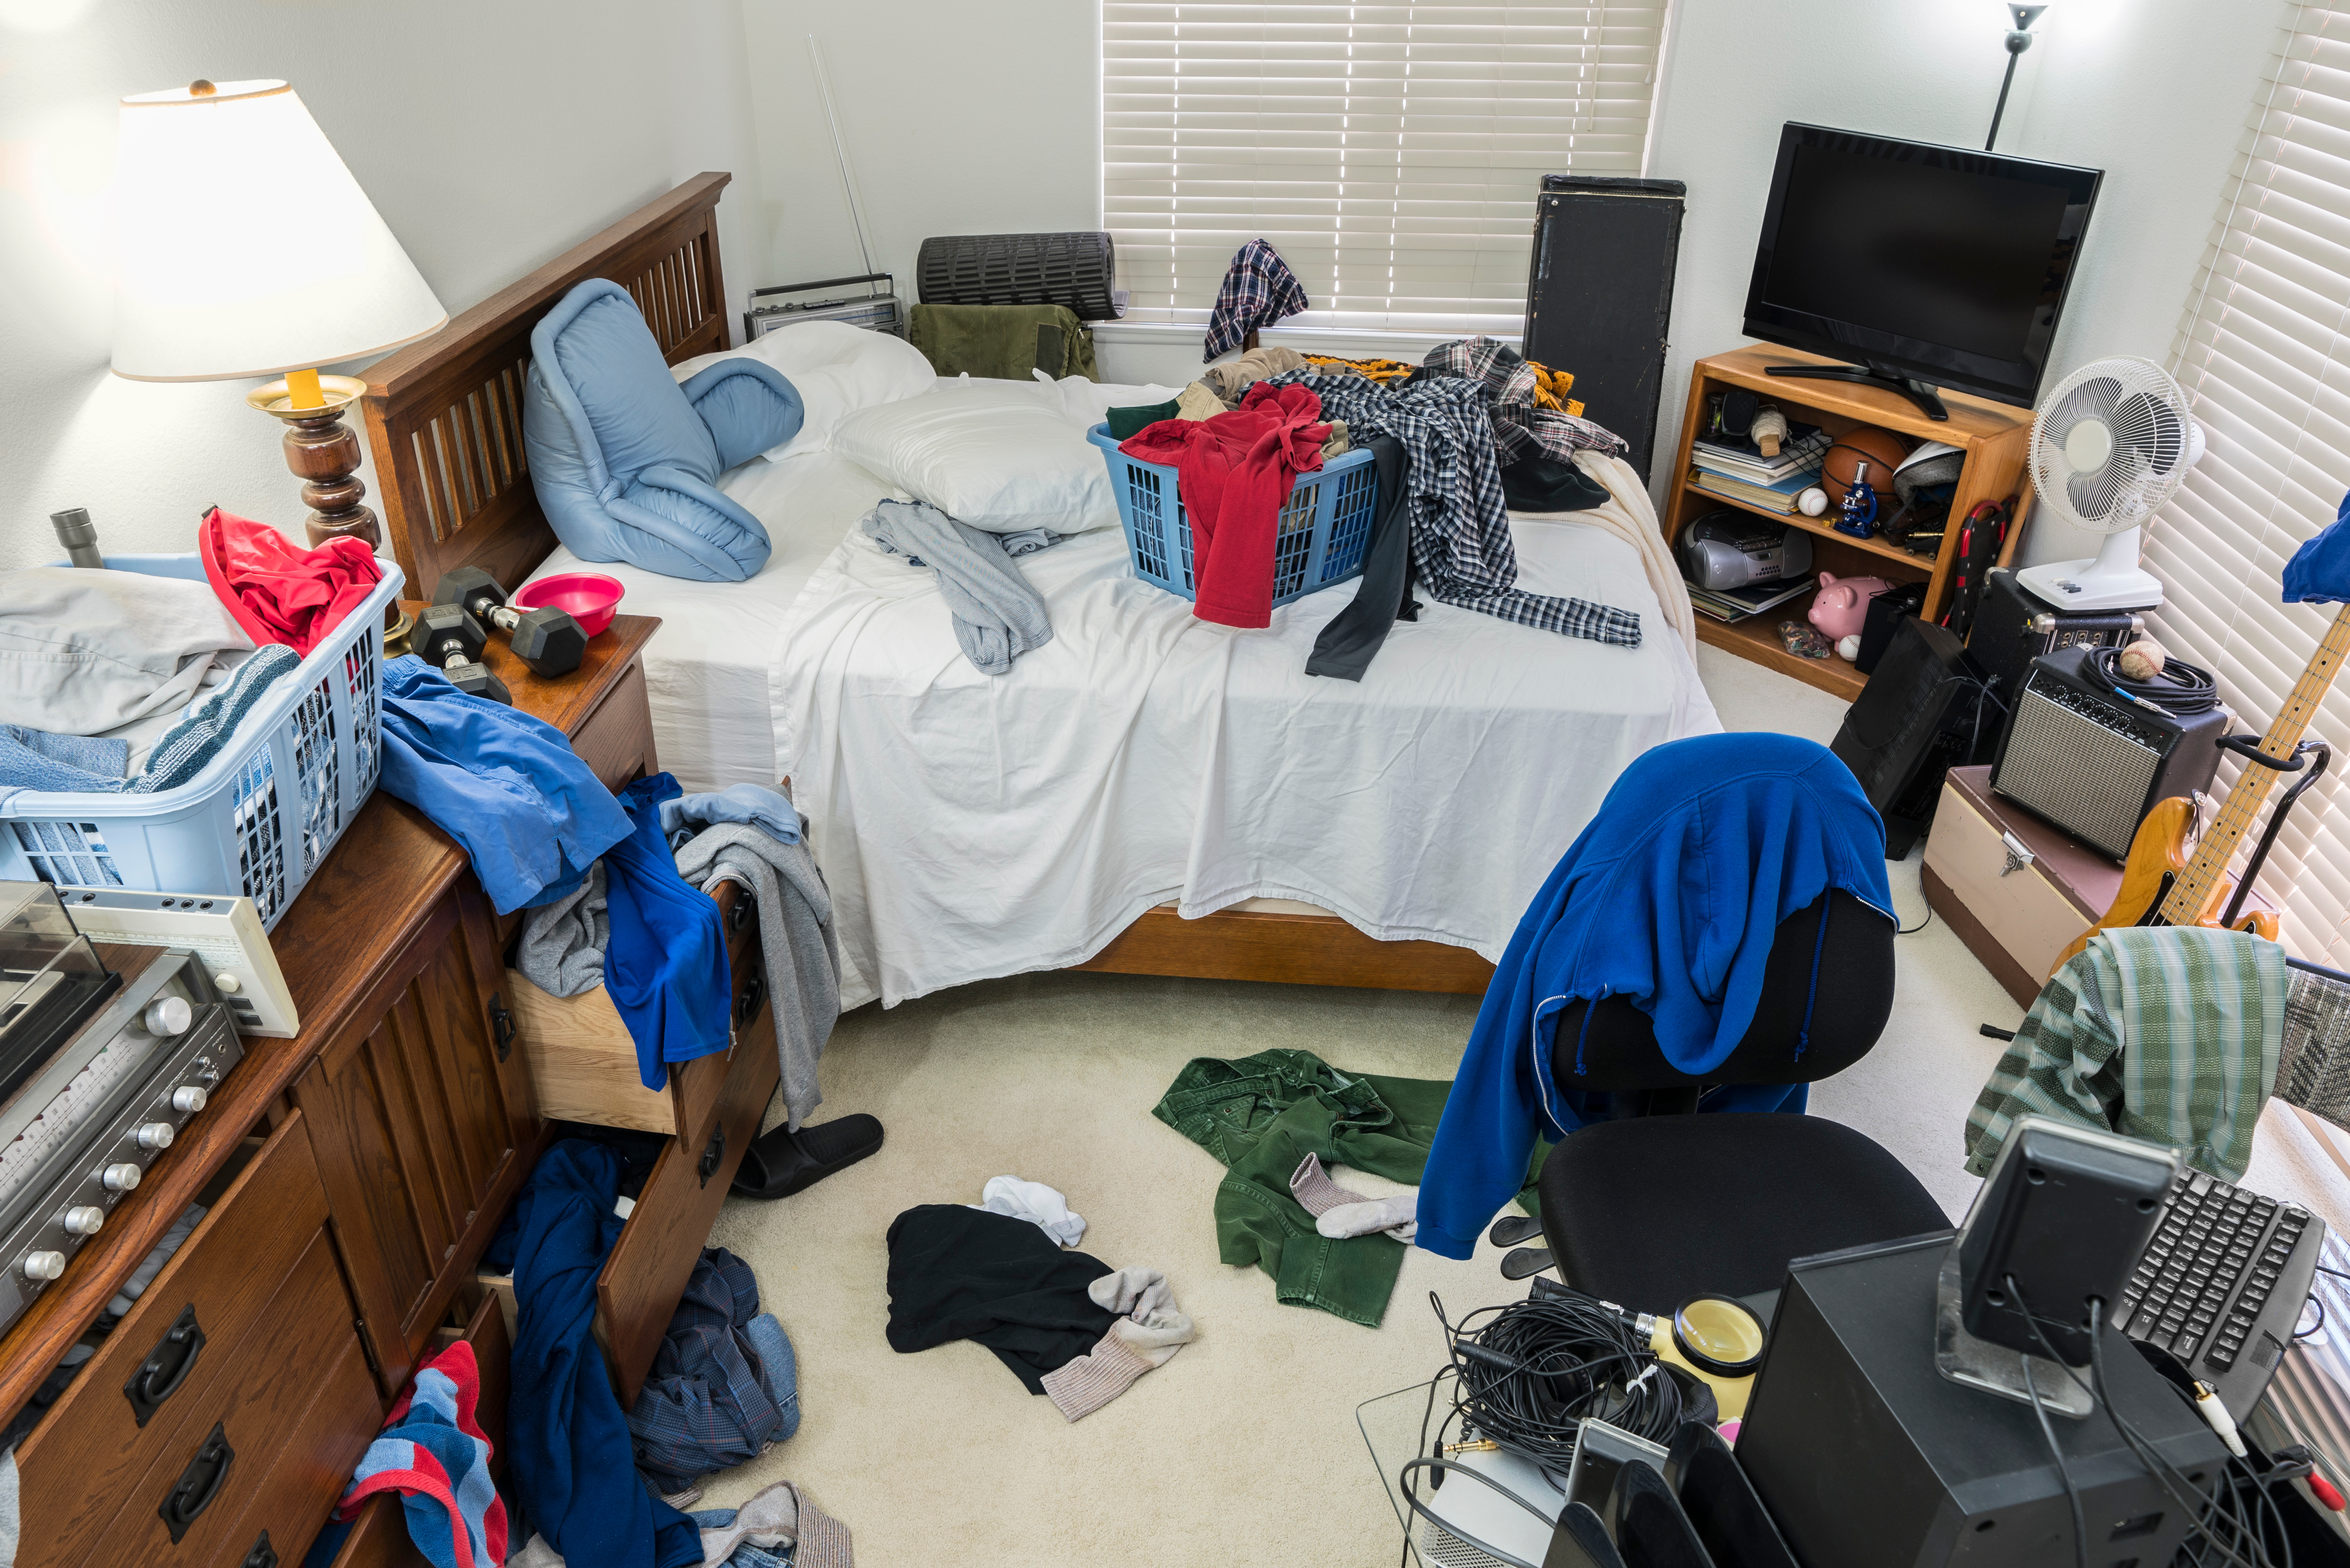 A very messy bedroom with clothes strewn about the furniture.